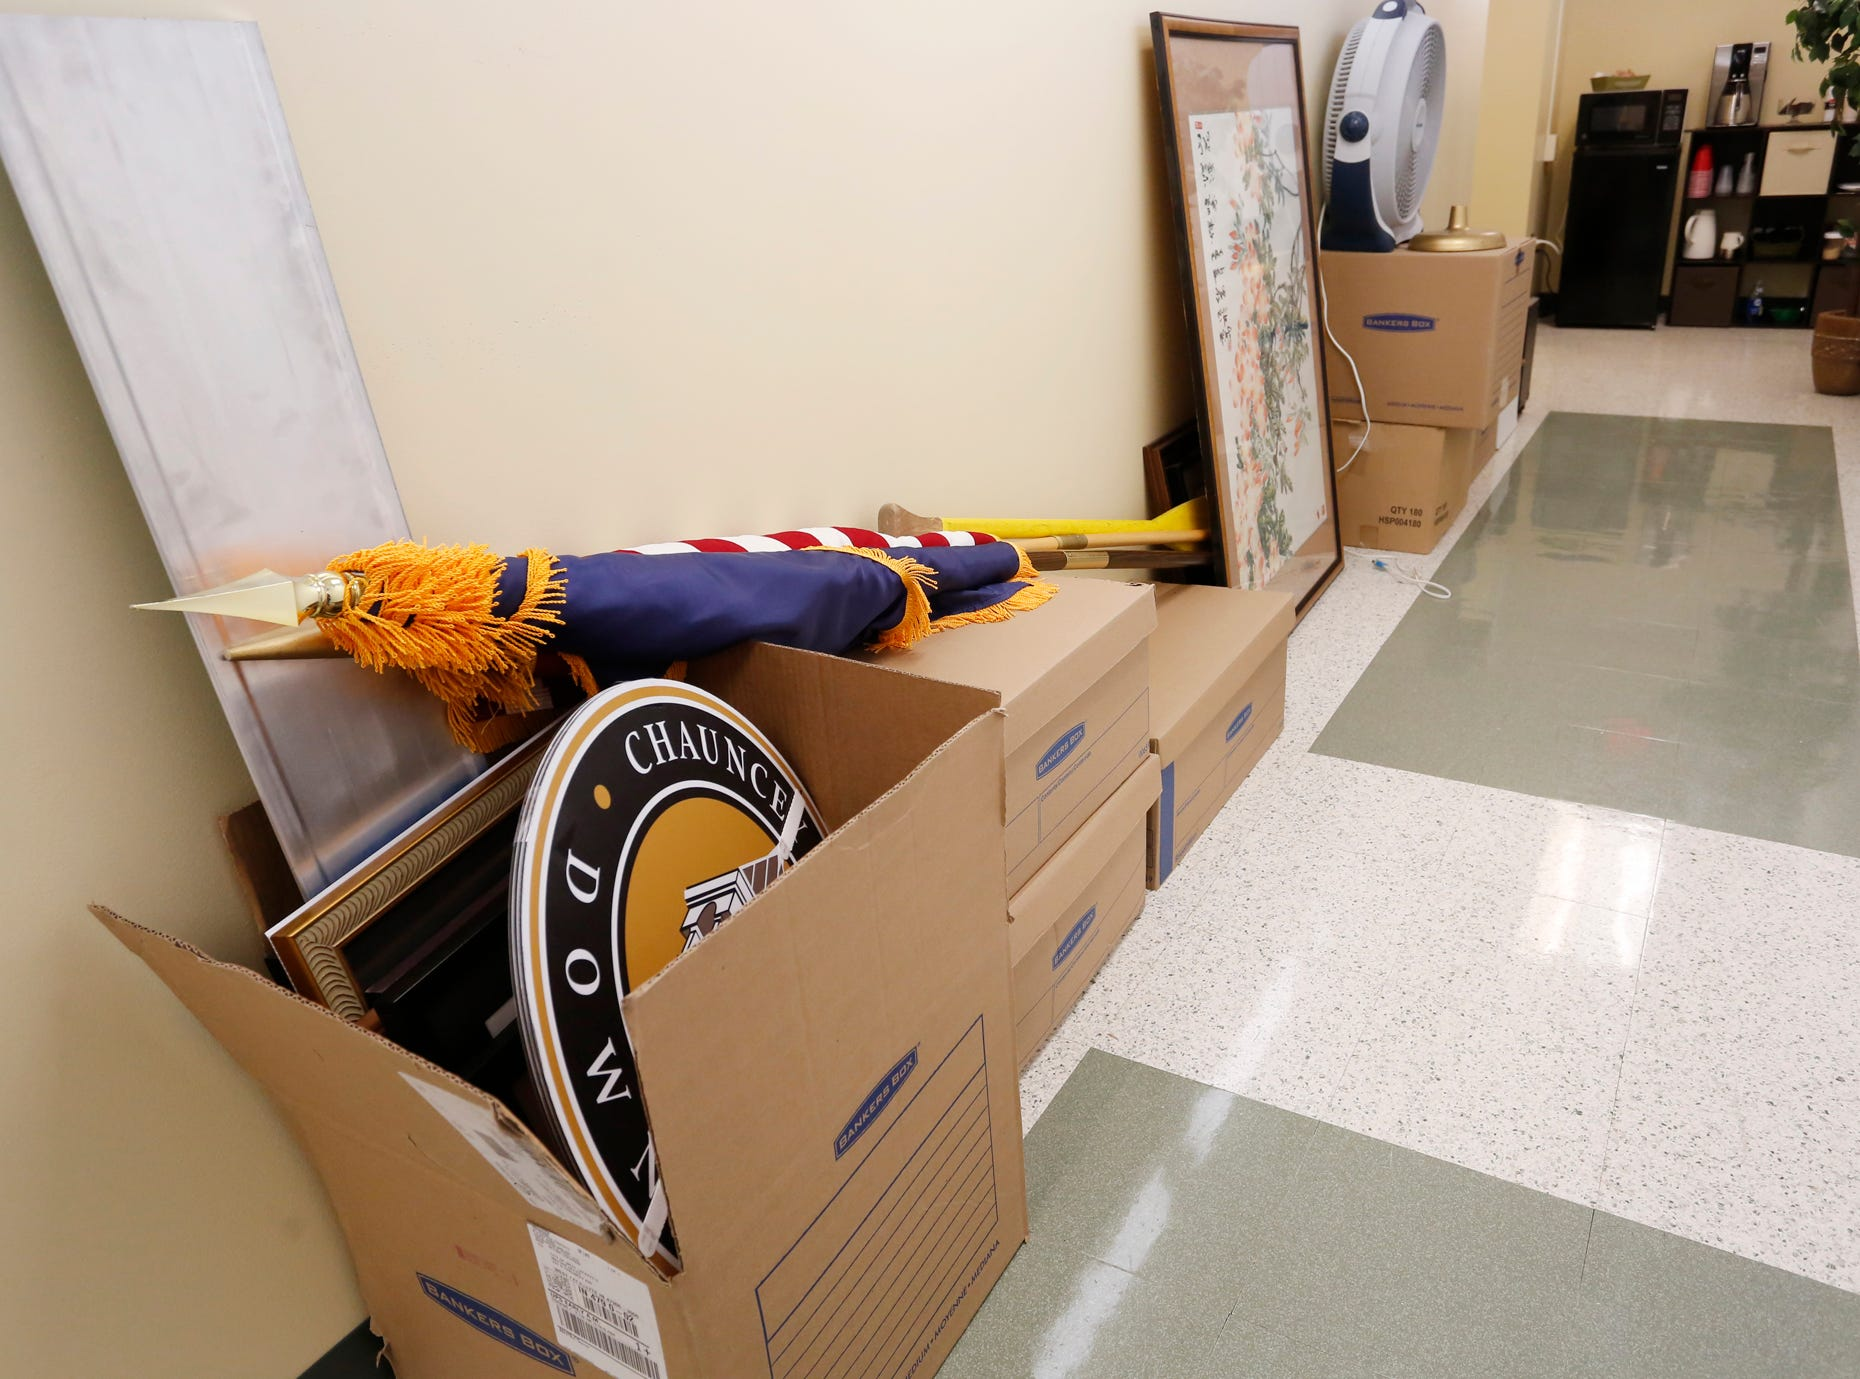 Several items remain in boxes in the hall just outside Mayor John Dennis' office as the City of West Lafayette moves its offices from the Morton Center into the former Happy Hollow School Monday, December 17, 2018, in West Lafayette. The city will keep it's offices in Happy Hollow for two years while the Morton Center is being renovated. The city will move its offices back to the Morton Center when renovations are completed.